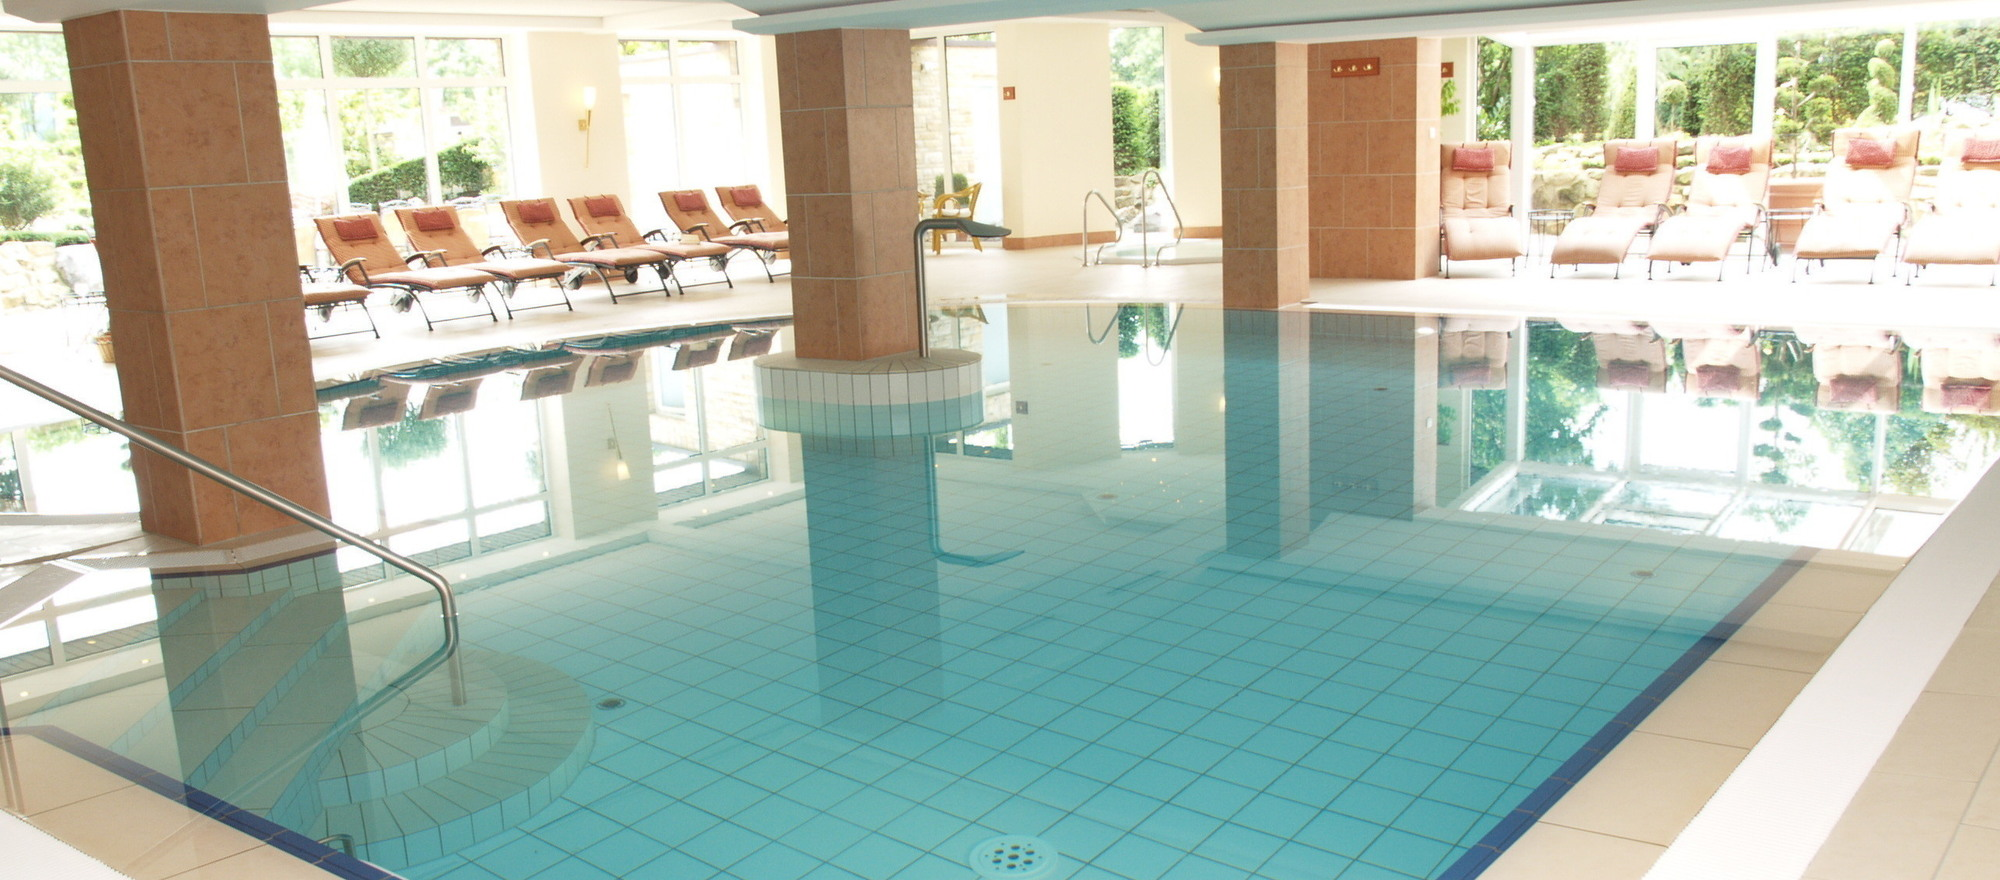 Heated pool at the 4-star-superior hotel Ringhotel Teutoburger Wald in Tecklenburg